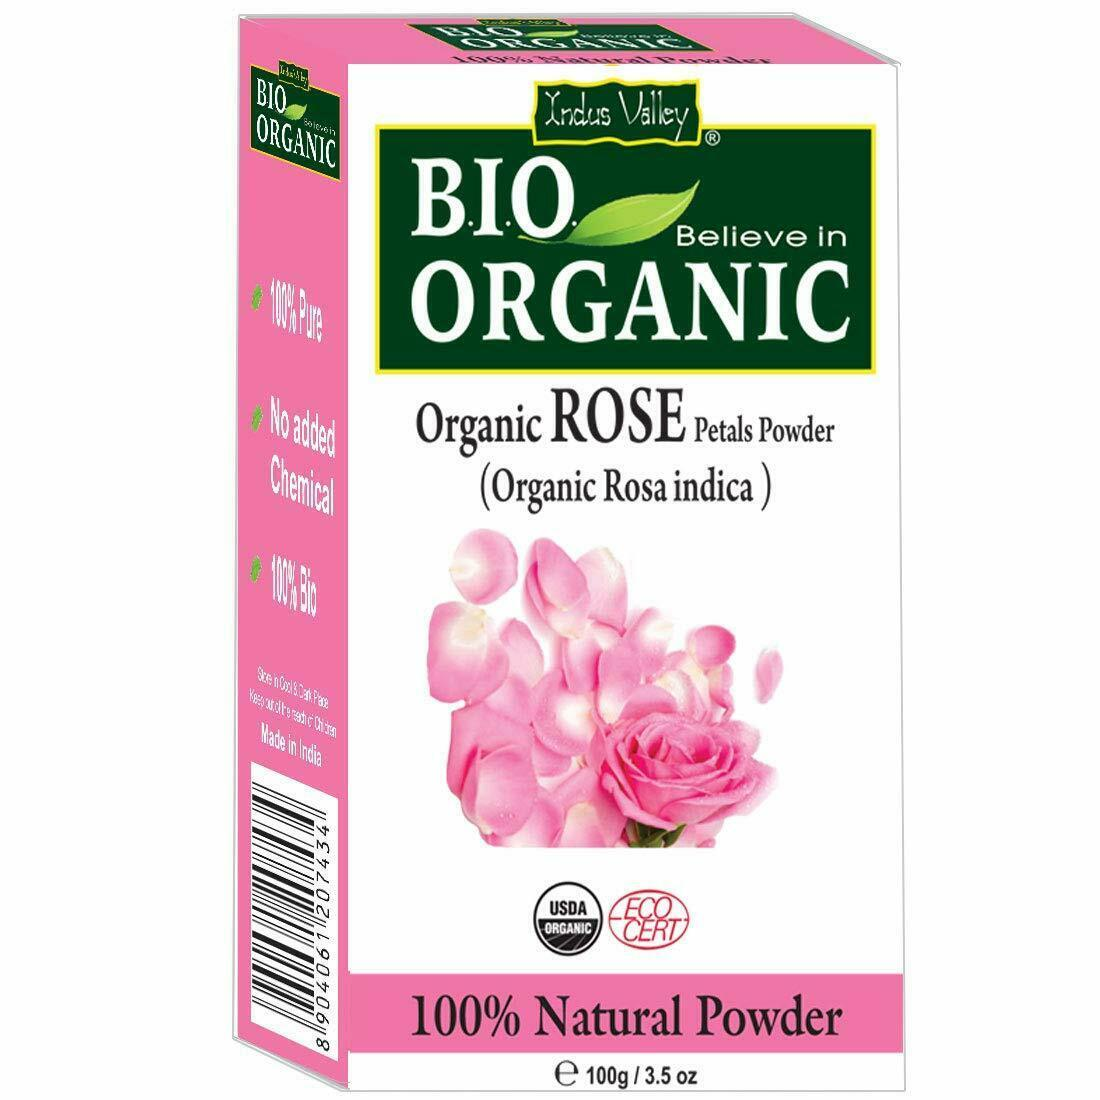 Indus Valley 100% Organic Rose Petals Powder image 4